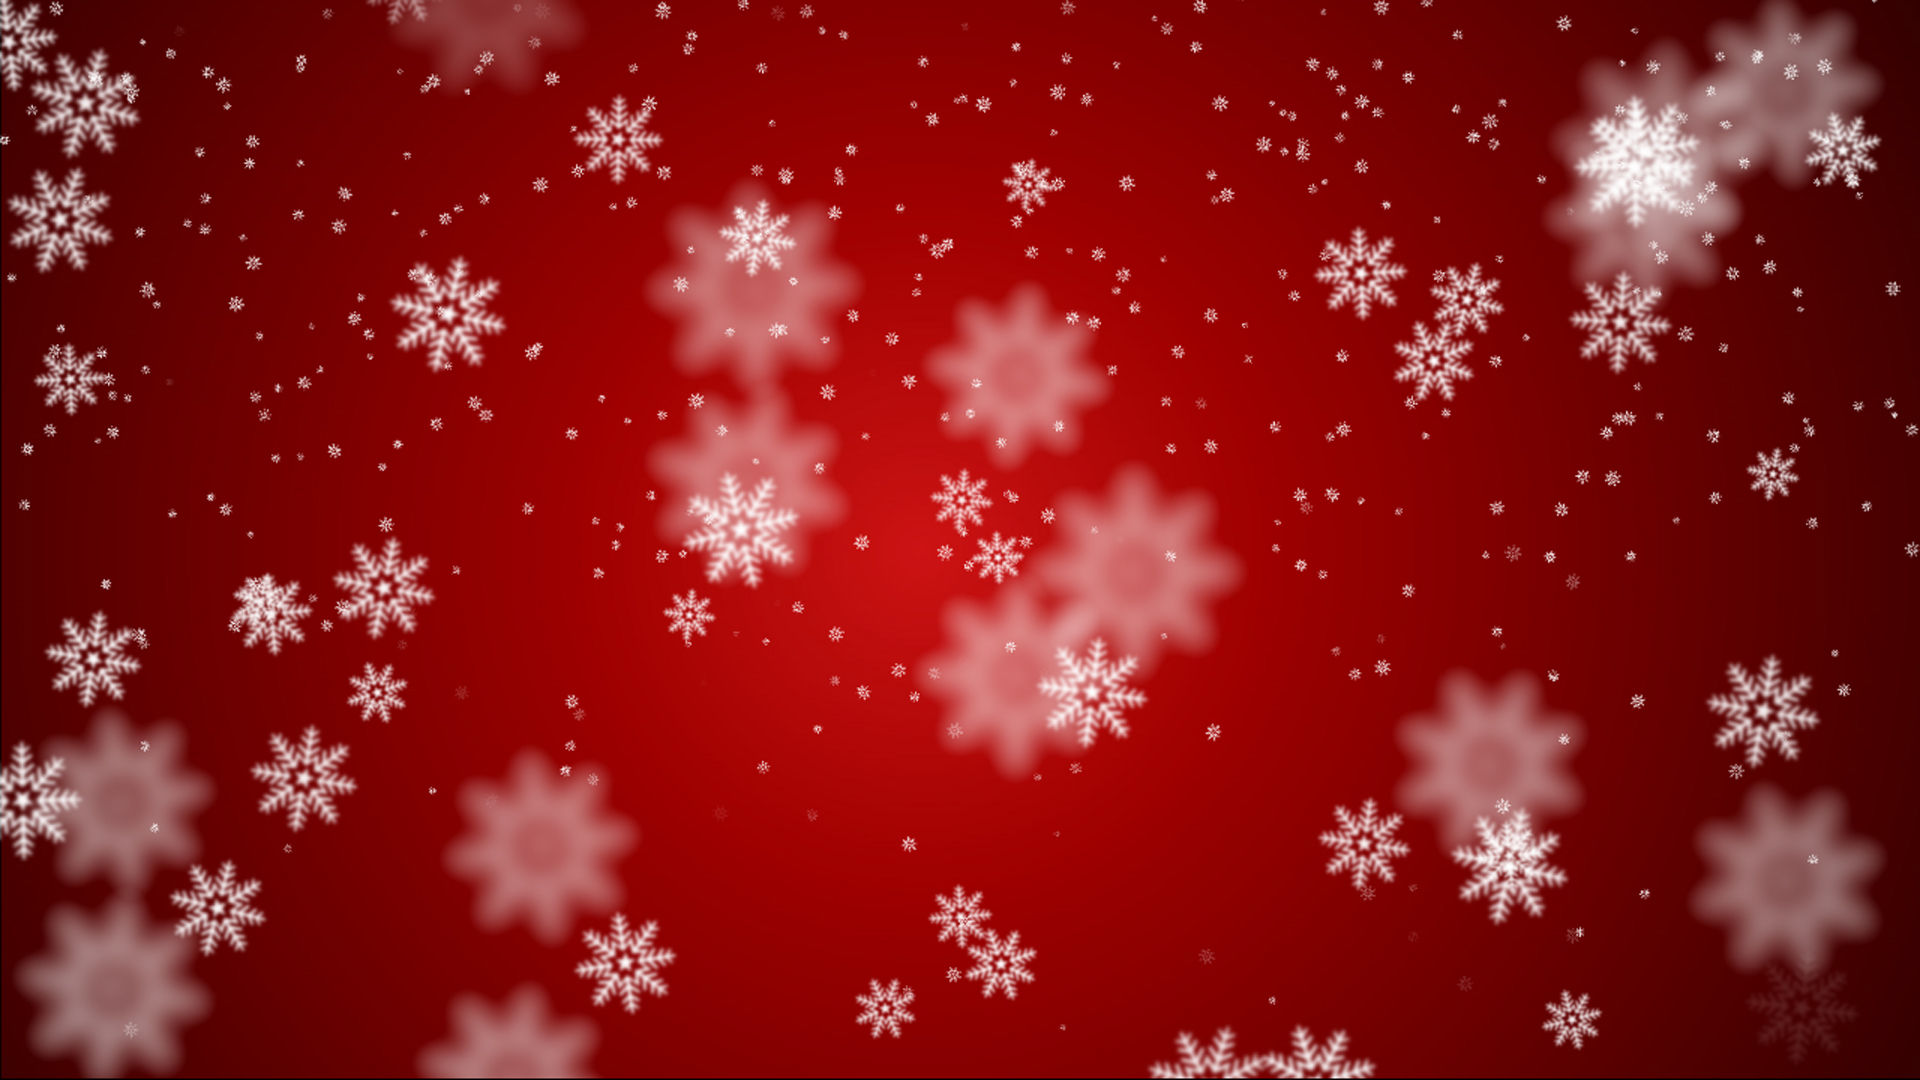 Xmas Background Wallpaper 1920x1080 26628